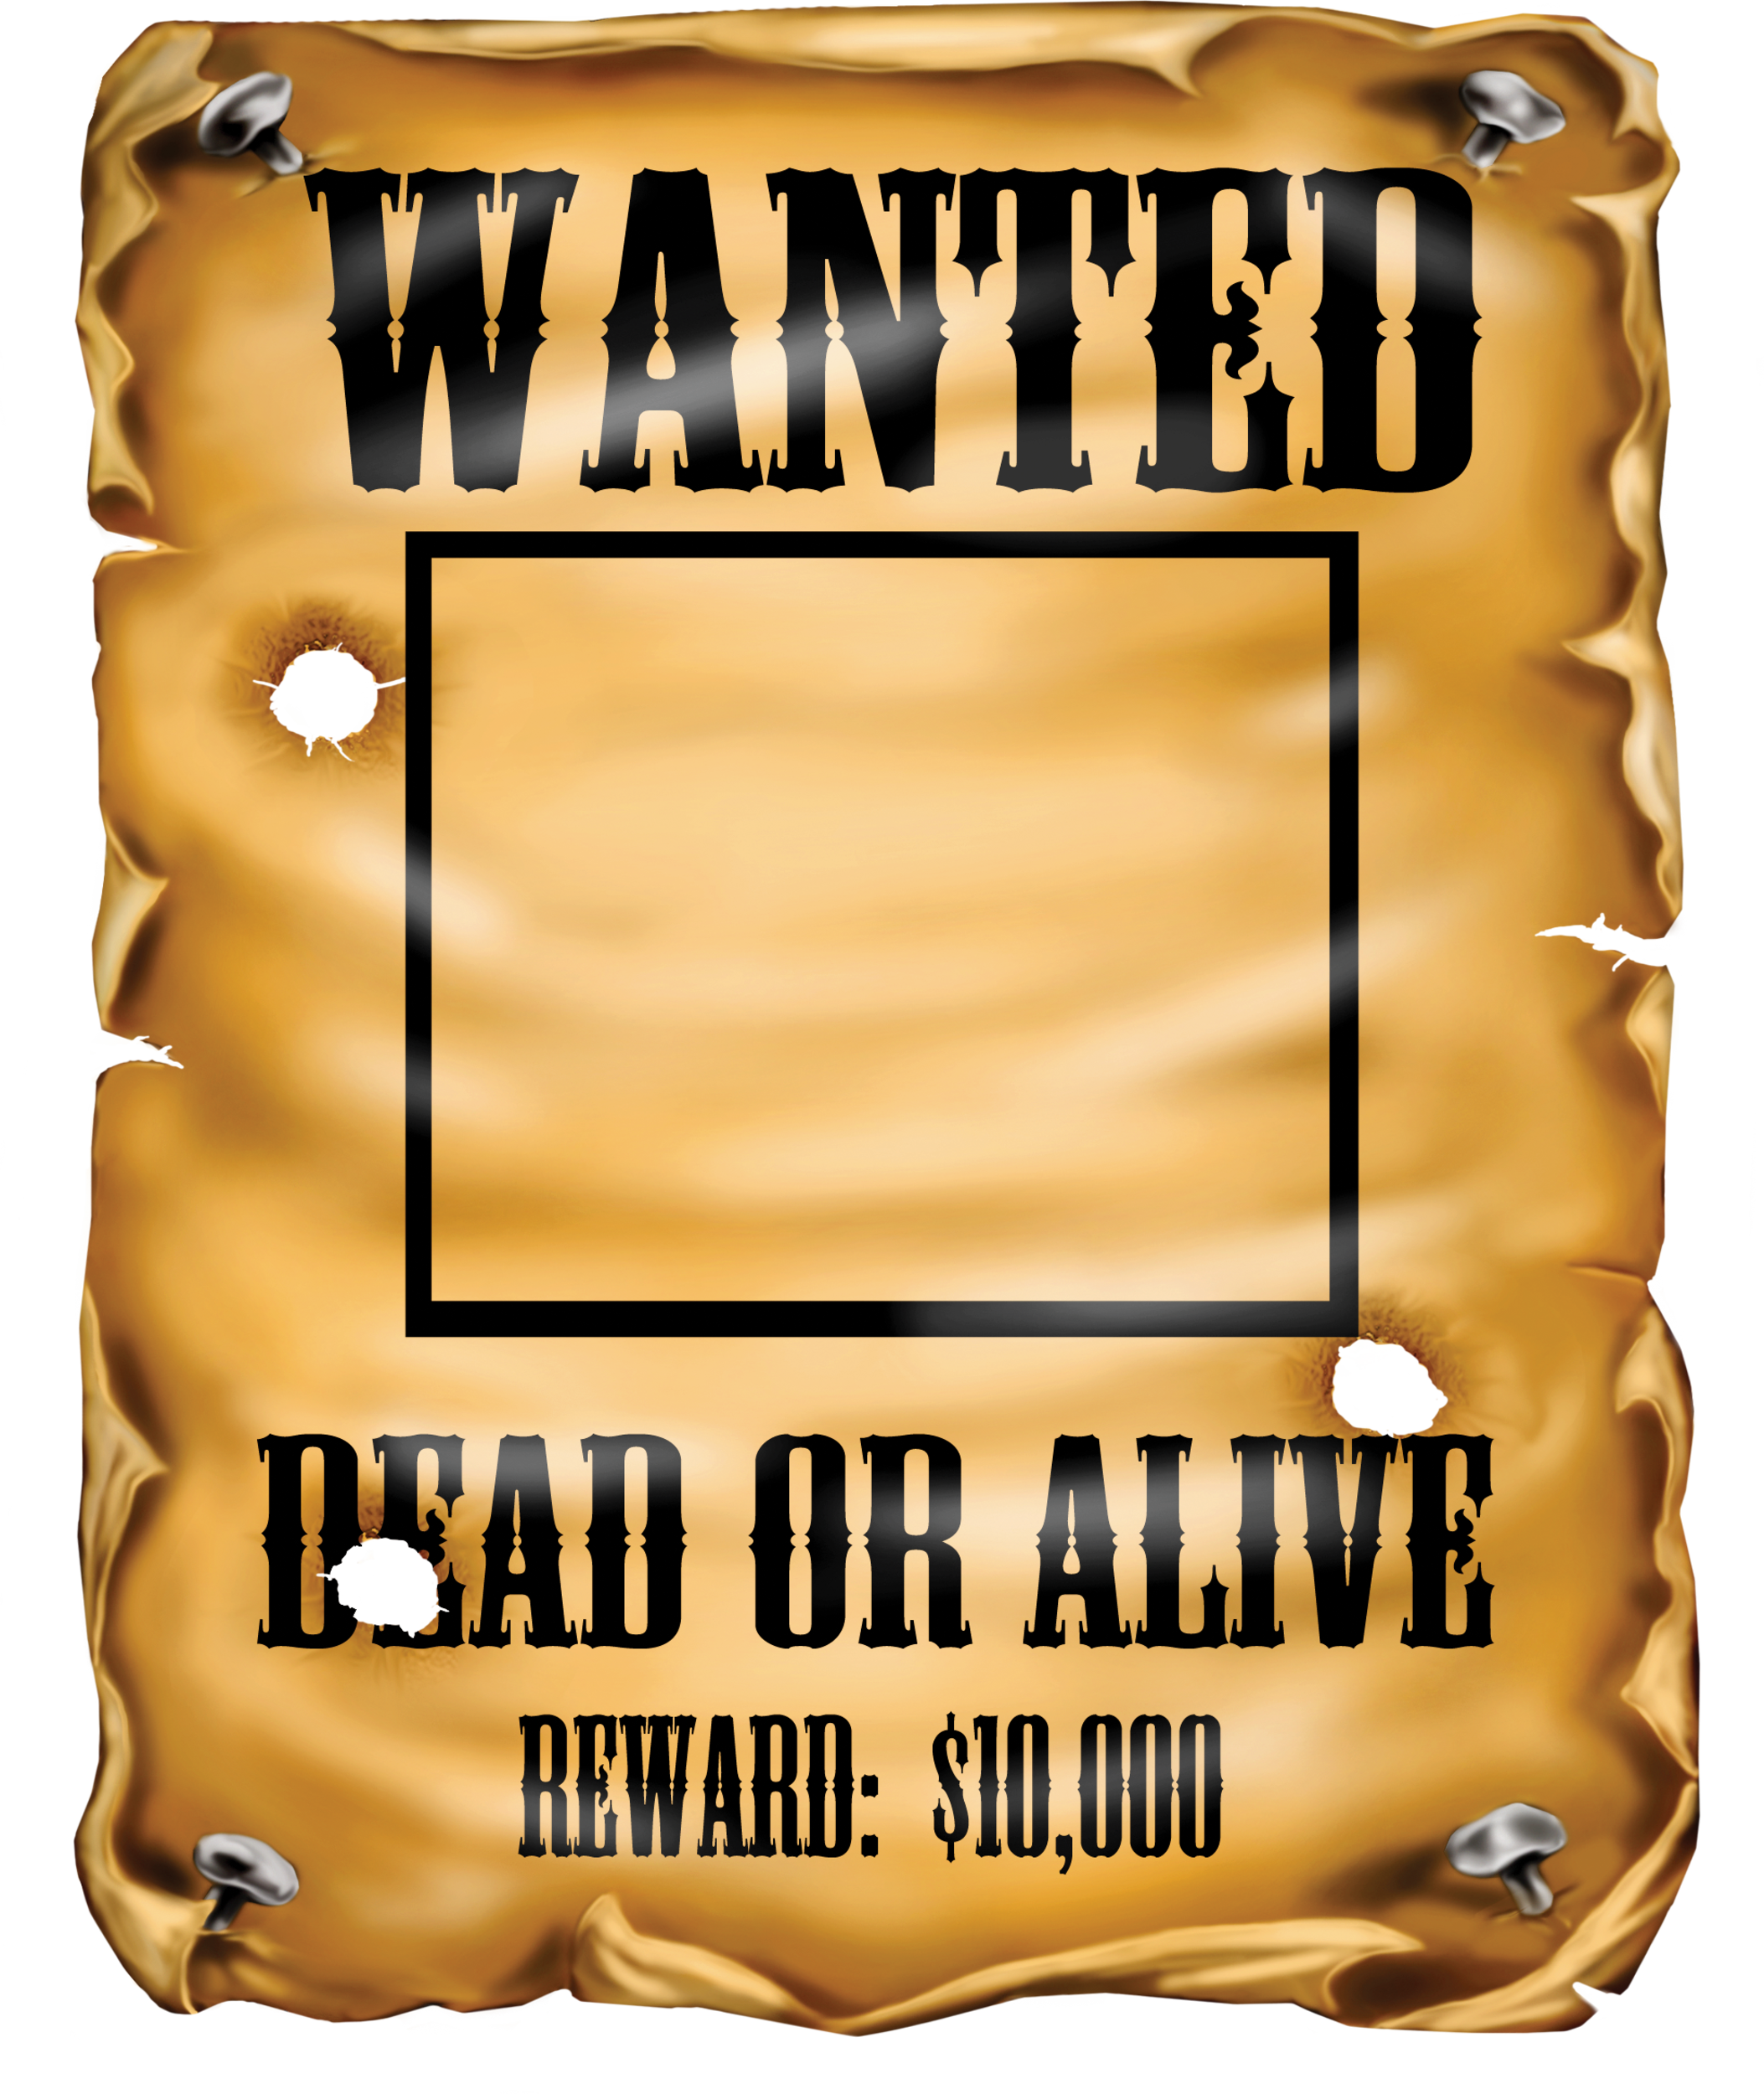 most wanted poster clipart tucson arizona pinterest tucson rh pinterest com